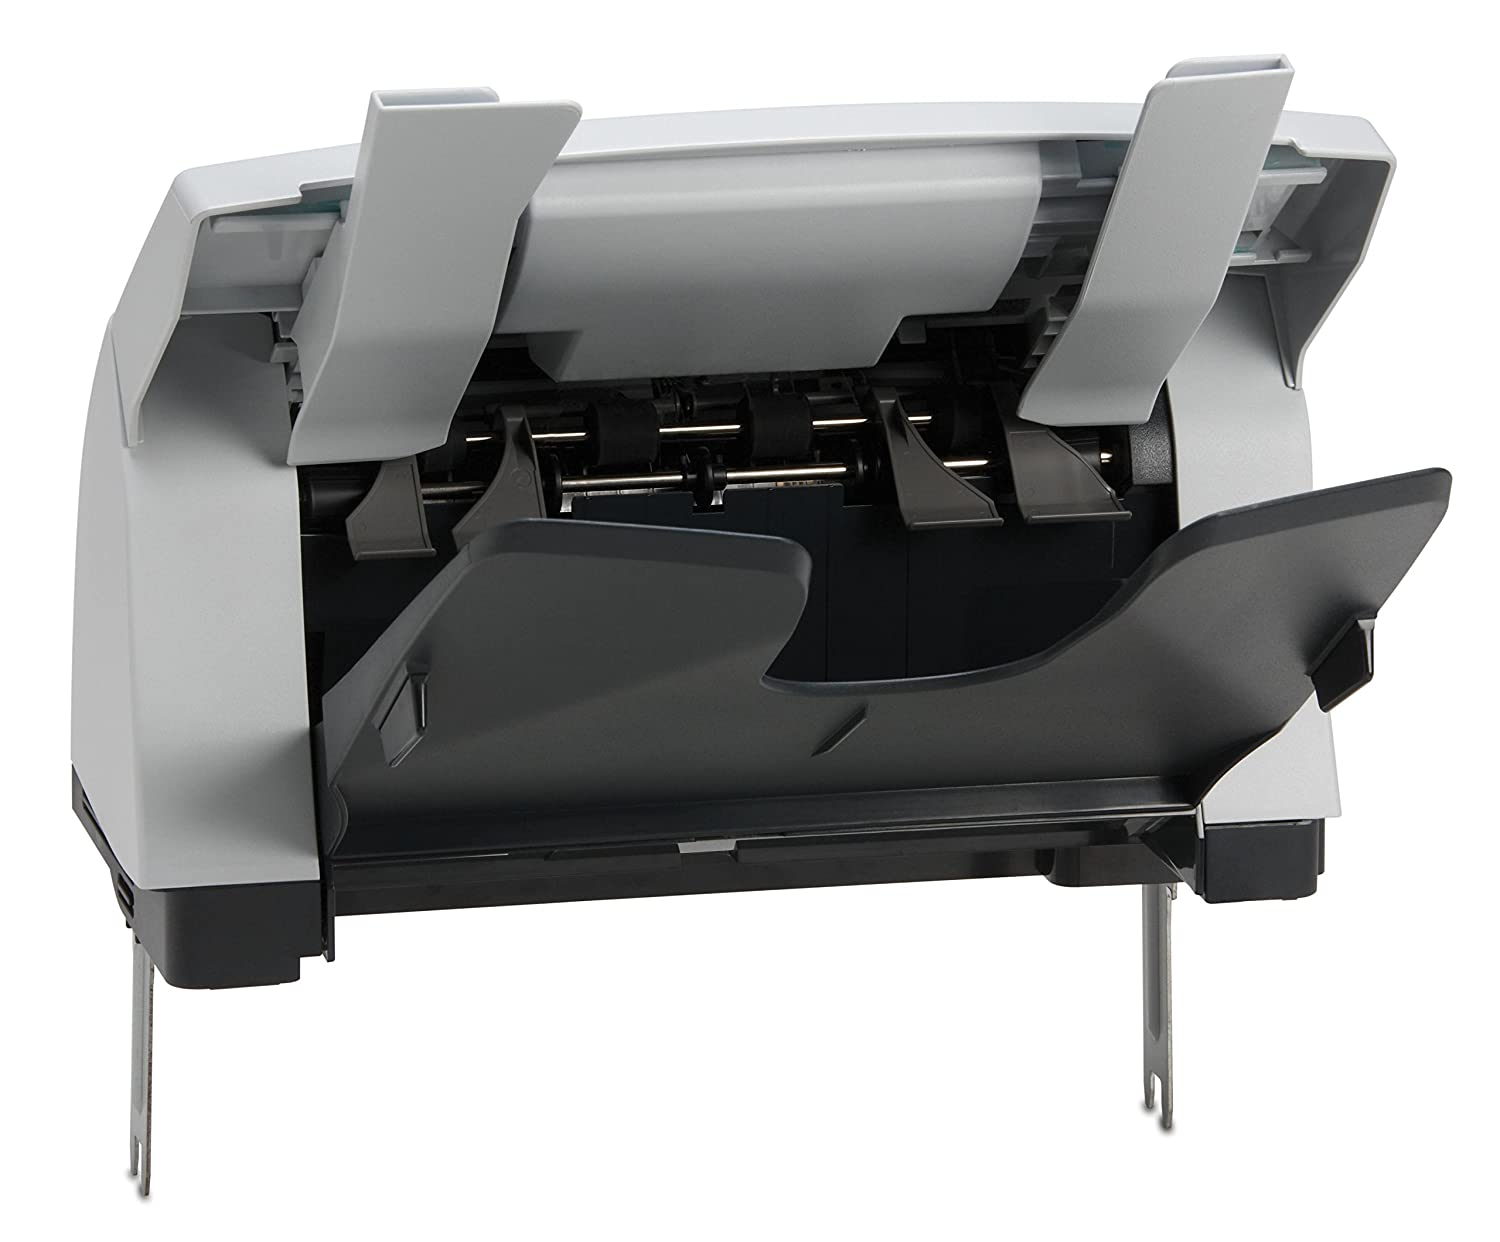 Laserjet 500-Sheet Stacker